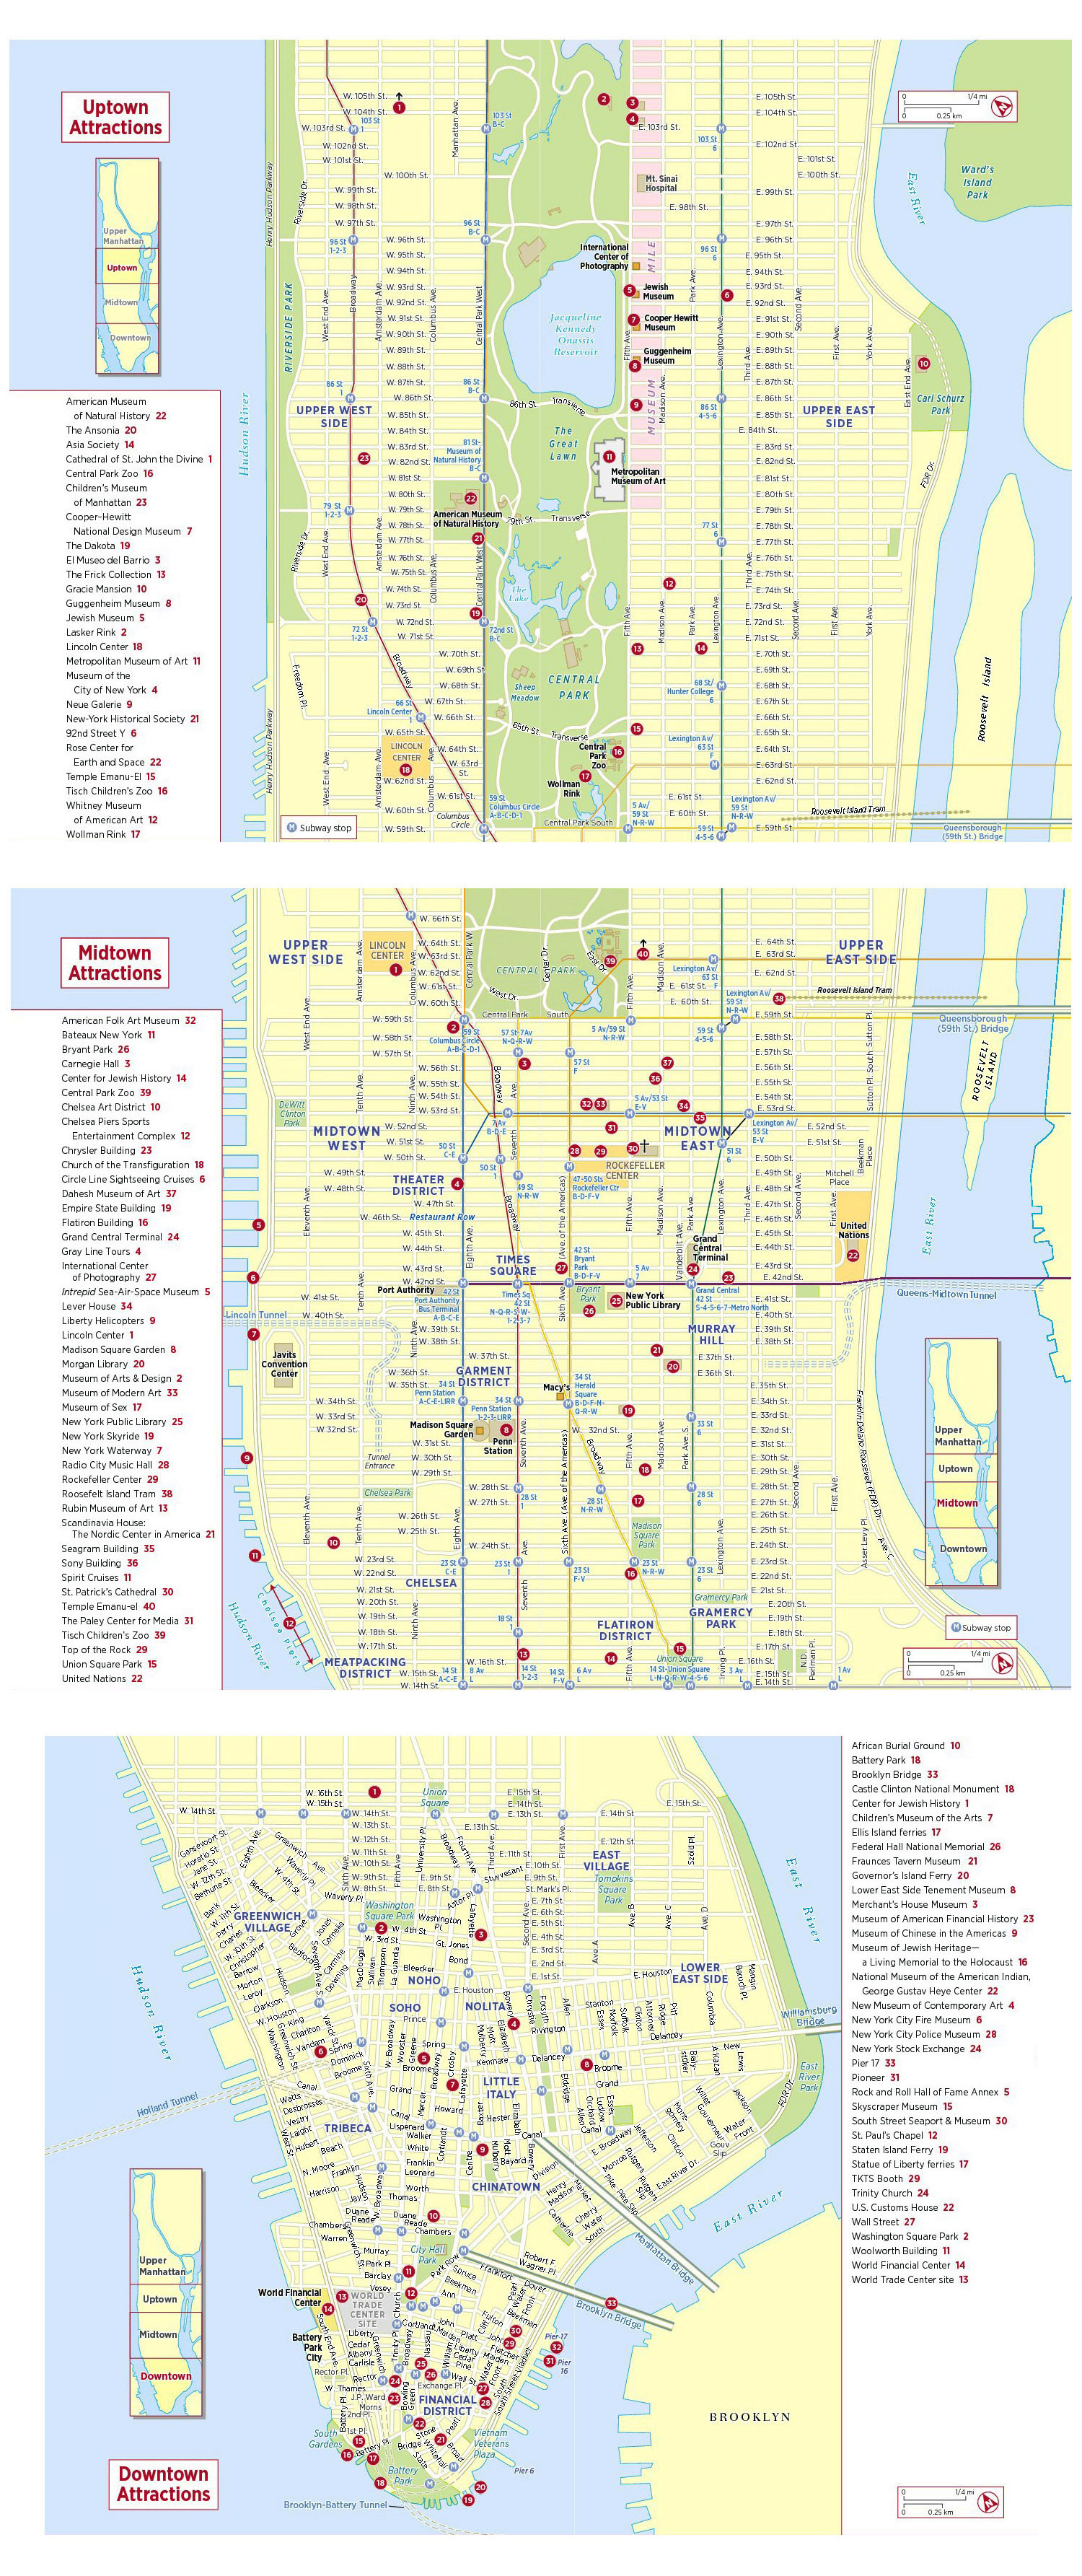 Map Of New York City Tourist Sites.Large Tourist Attractions Map Of New York City New York City Ny